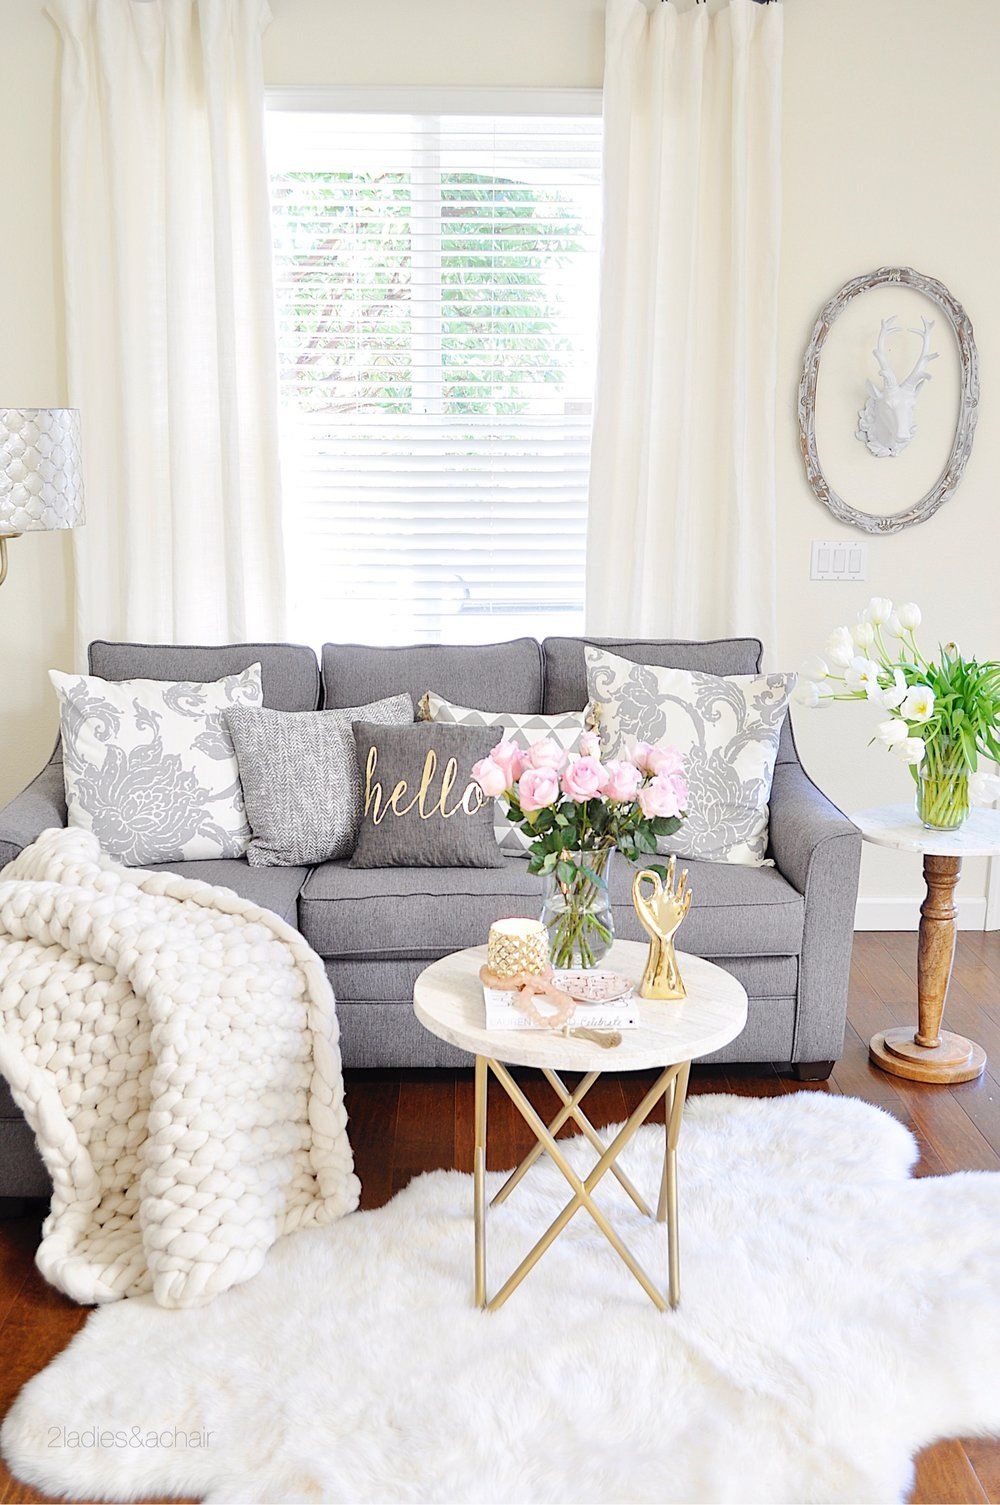 feb 7 how to decorate with pink my home room decor living room rh pinterest com